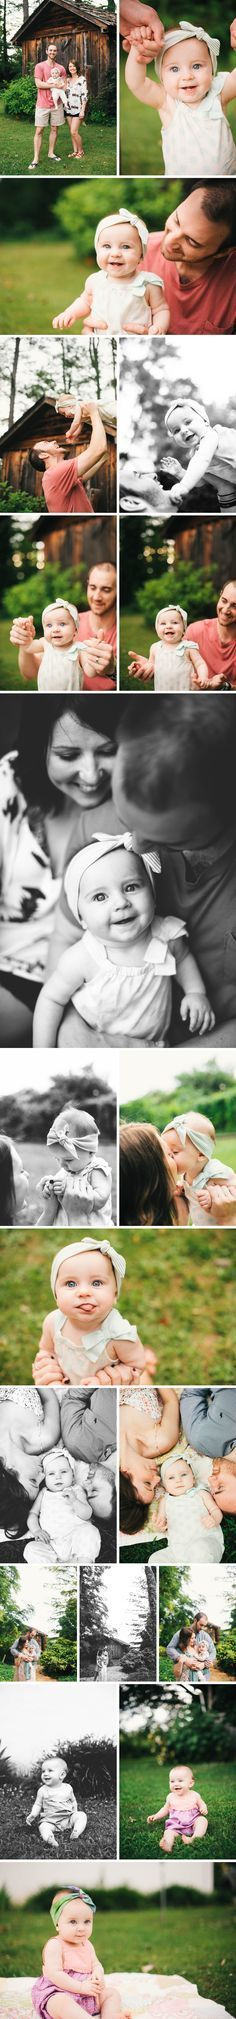 Photography Poses For Kids Toddlers Little Girls Family Pics 22 Ideas For 2019 Toddler Photography, Family Photography, Photography Poses, Indoor Photography, Family Posing, Family Portraits, Family Pictures, Baby Pictures, Spring Pictures